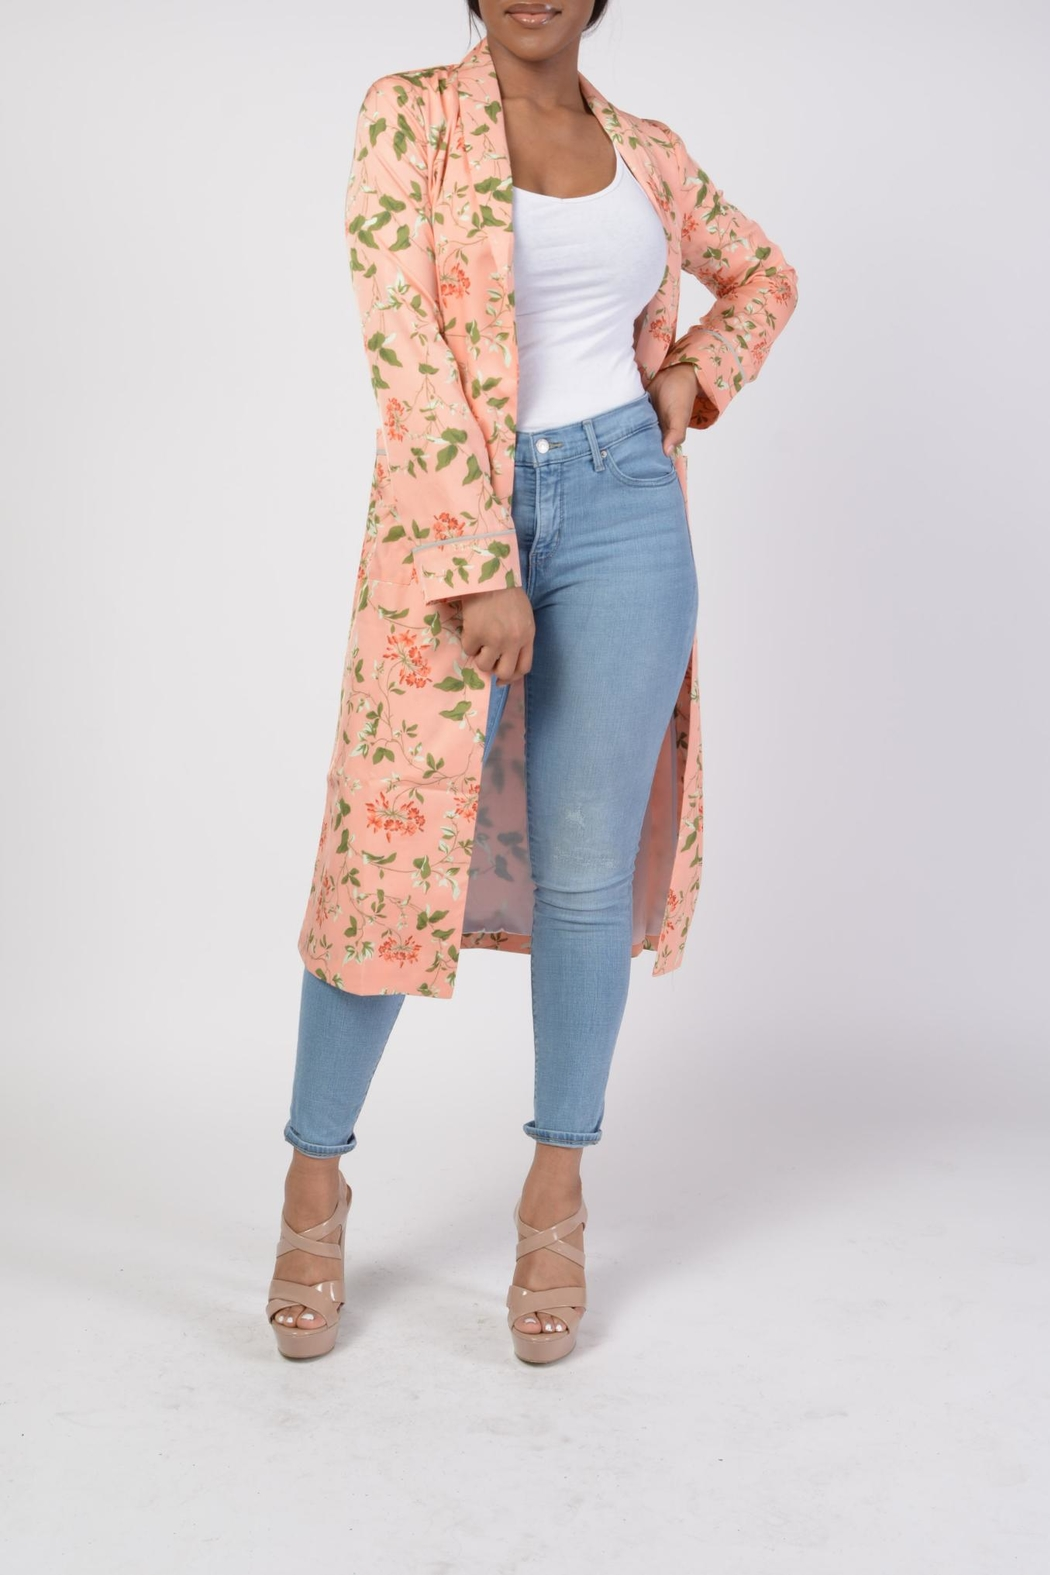 MODChic Couture Floral Robe Duster - Main Image